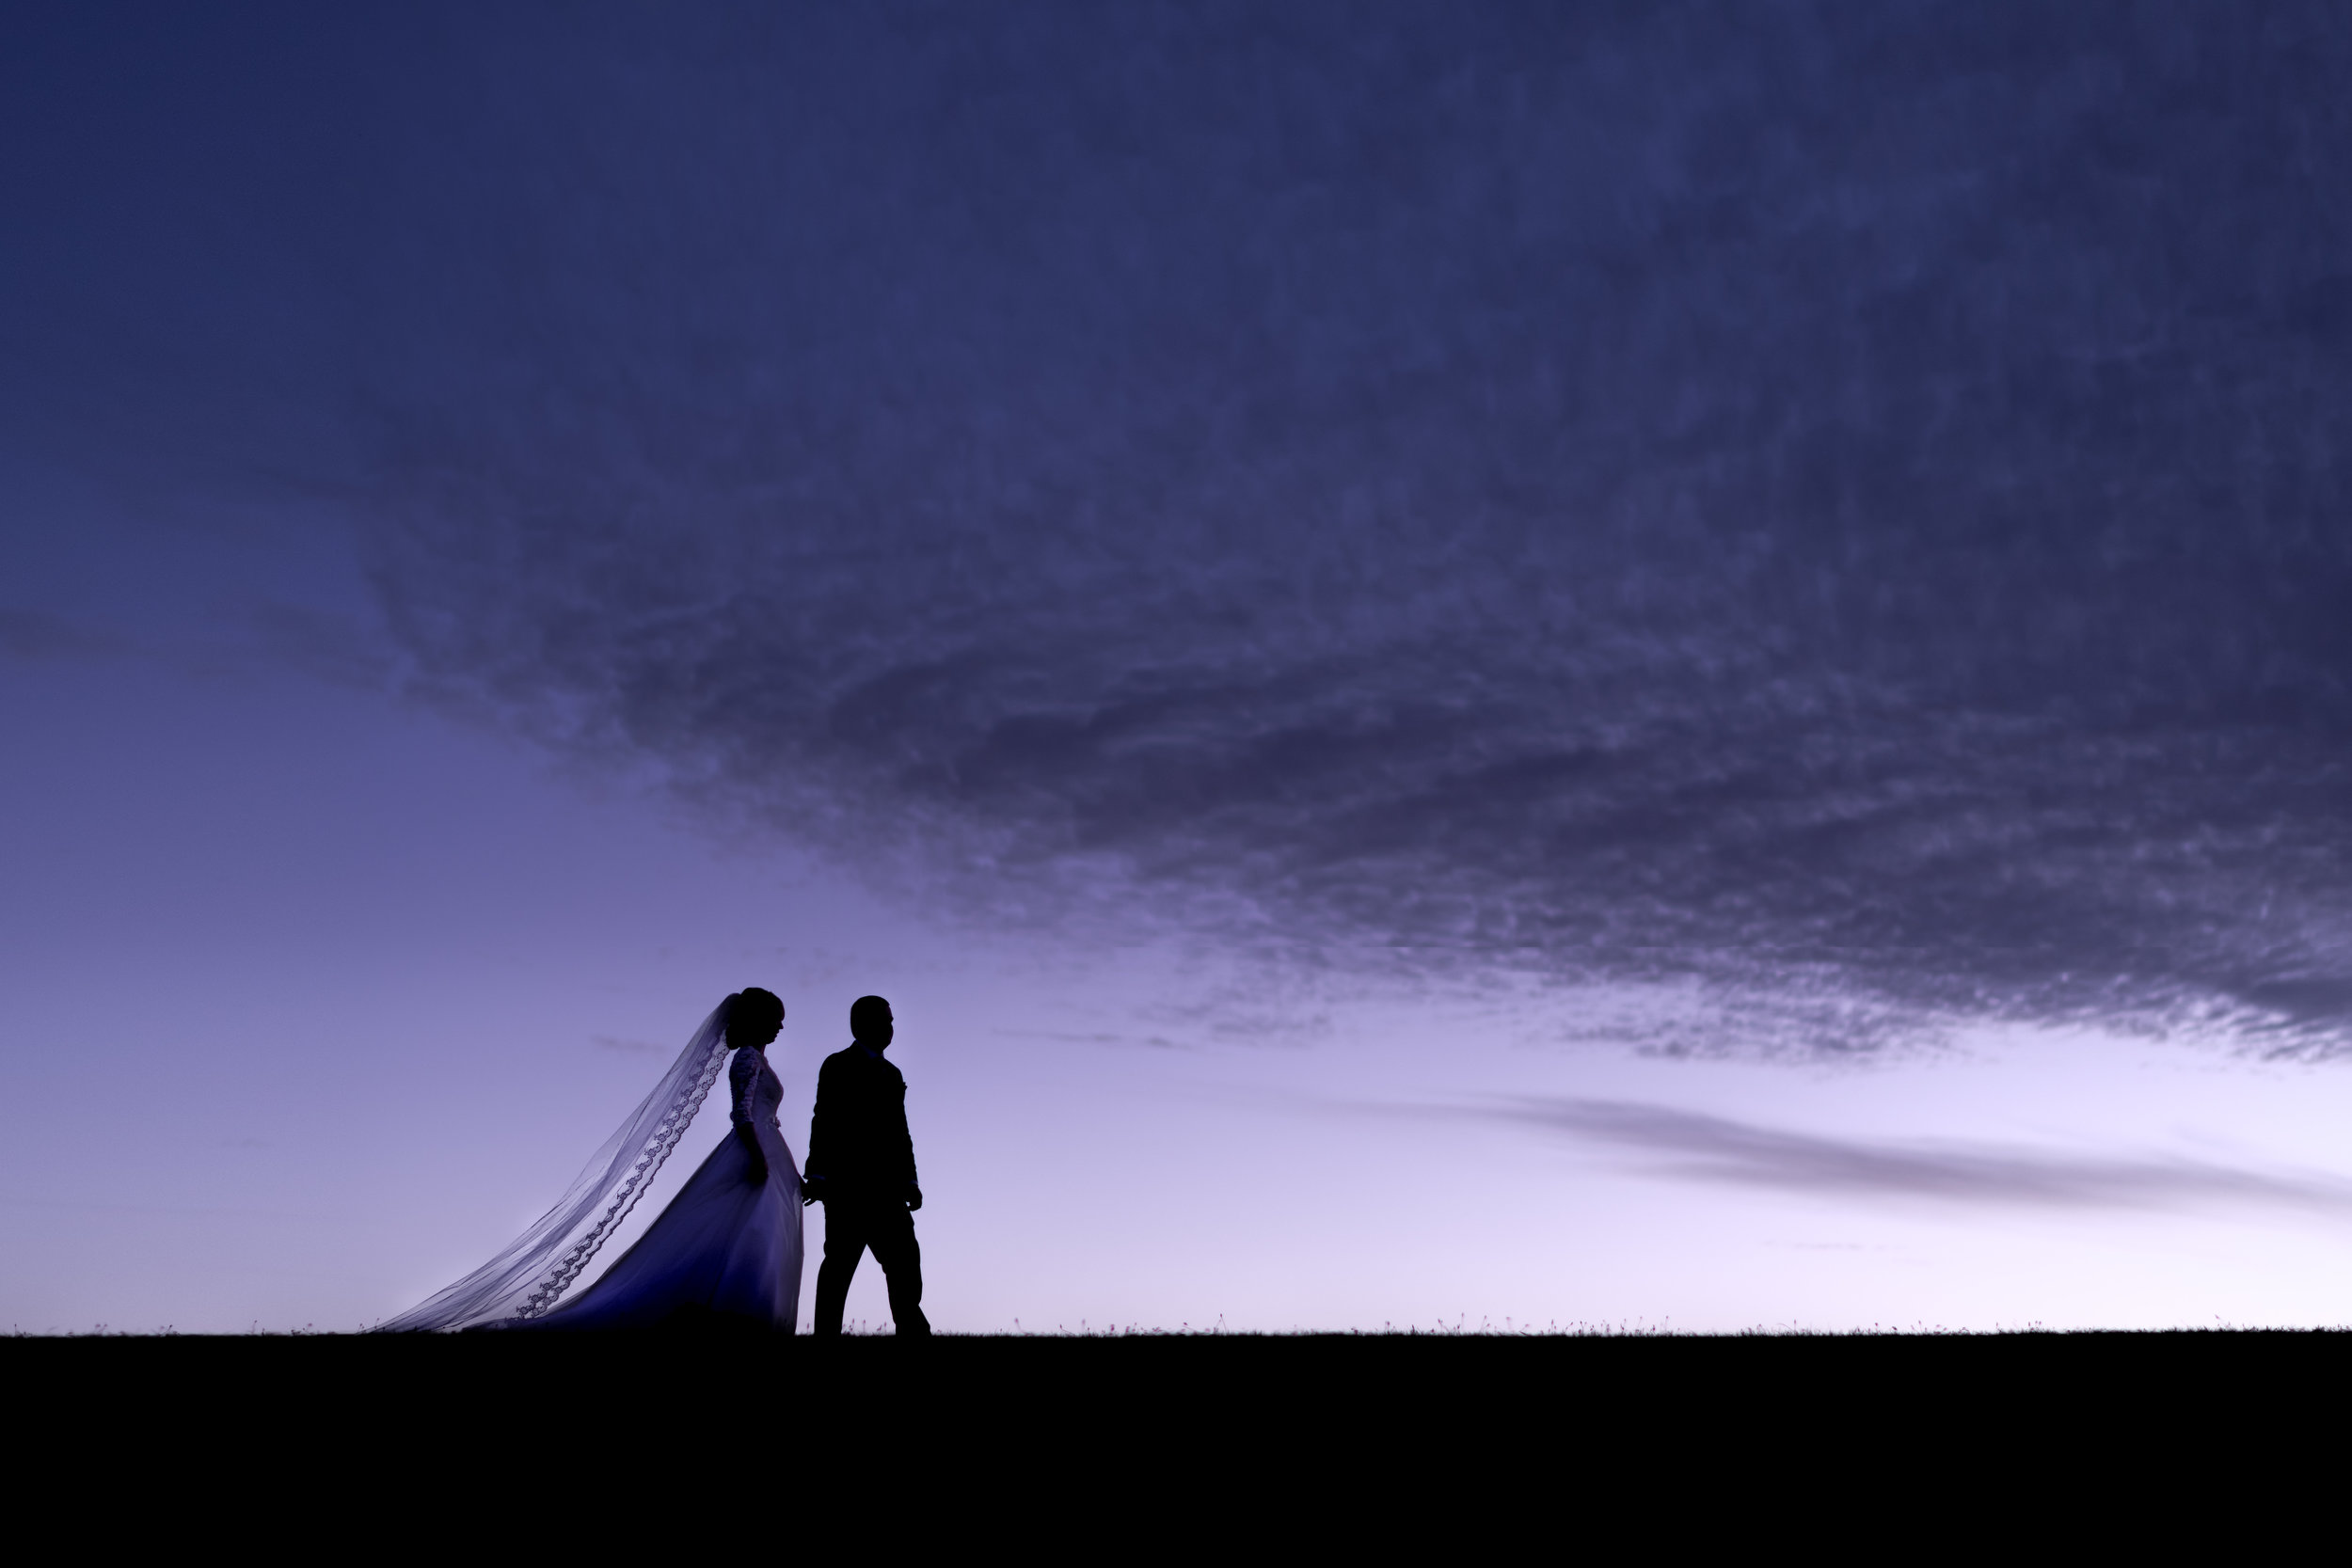 Bride and Groom evening silhouette